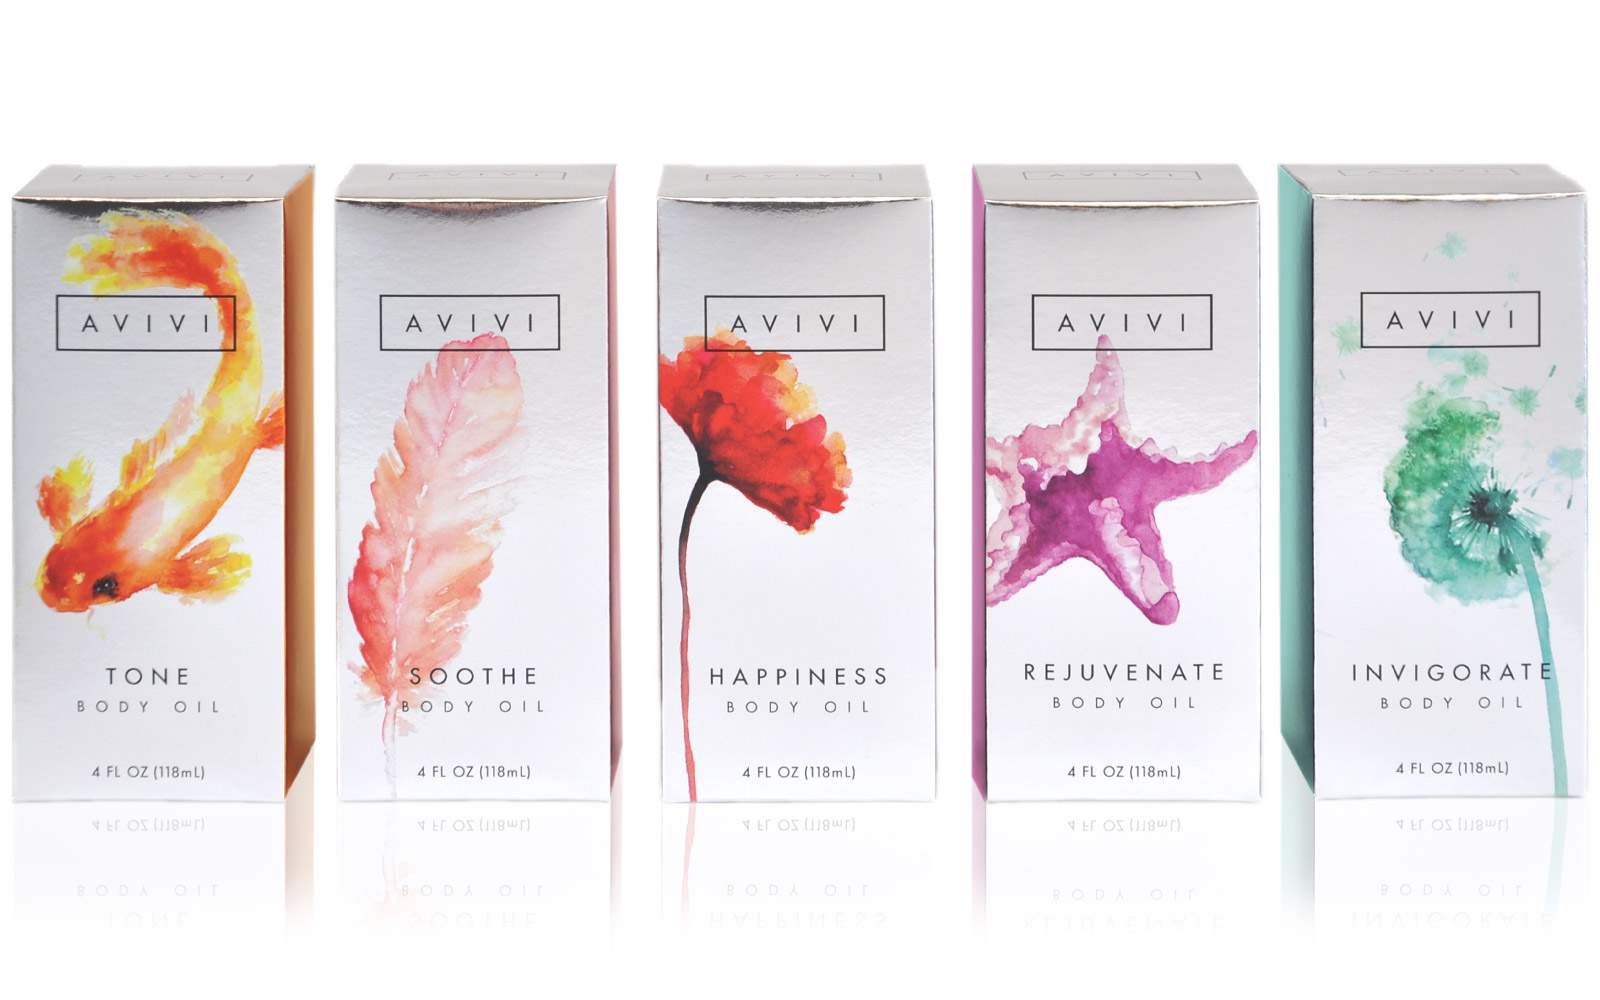 mslk-avivi-box-packaging